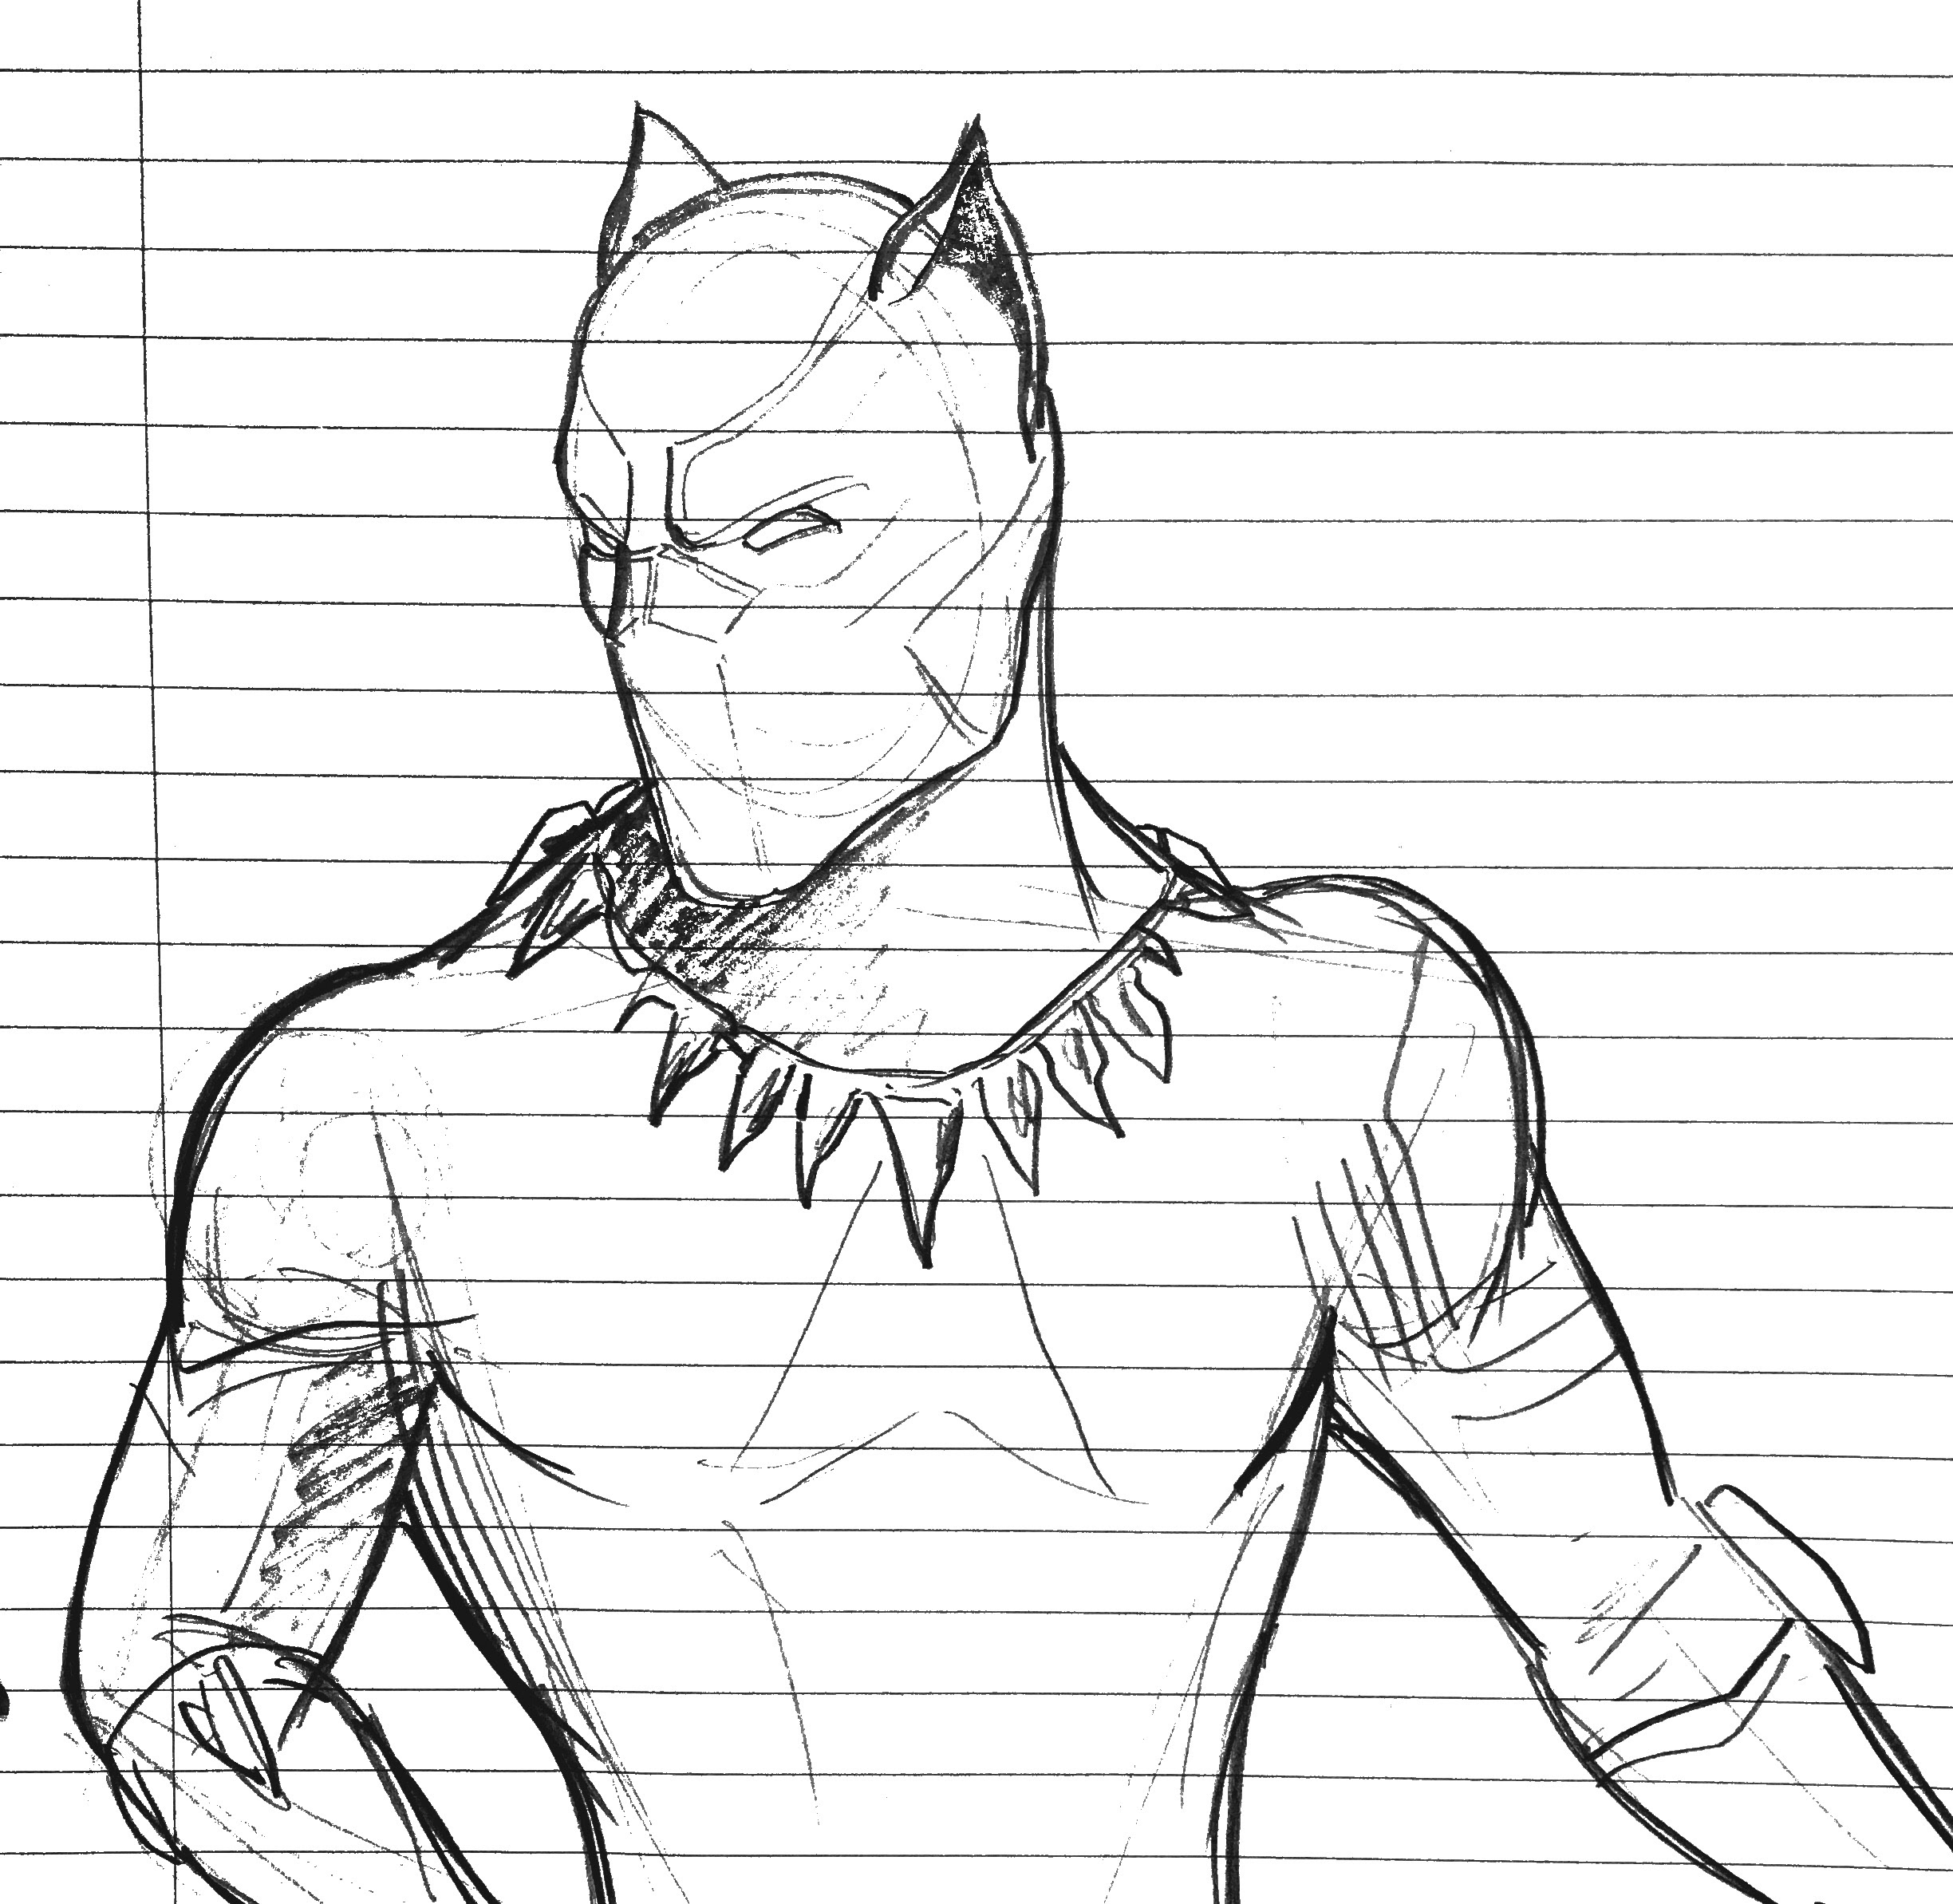 Black Panther Sketch By Jhartdrawings On DeviantArt